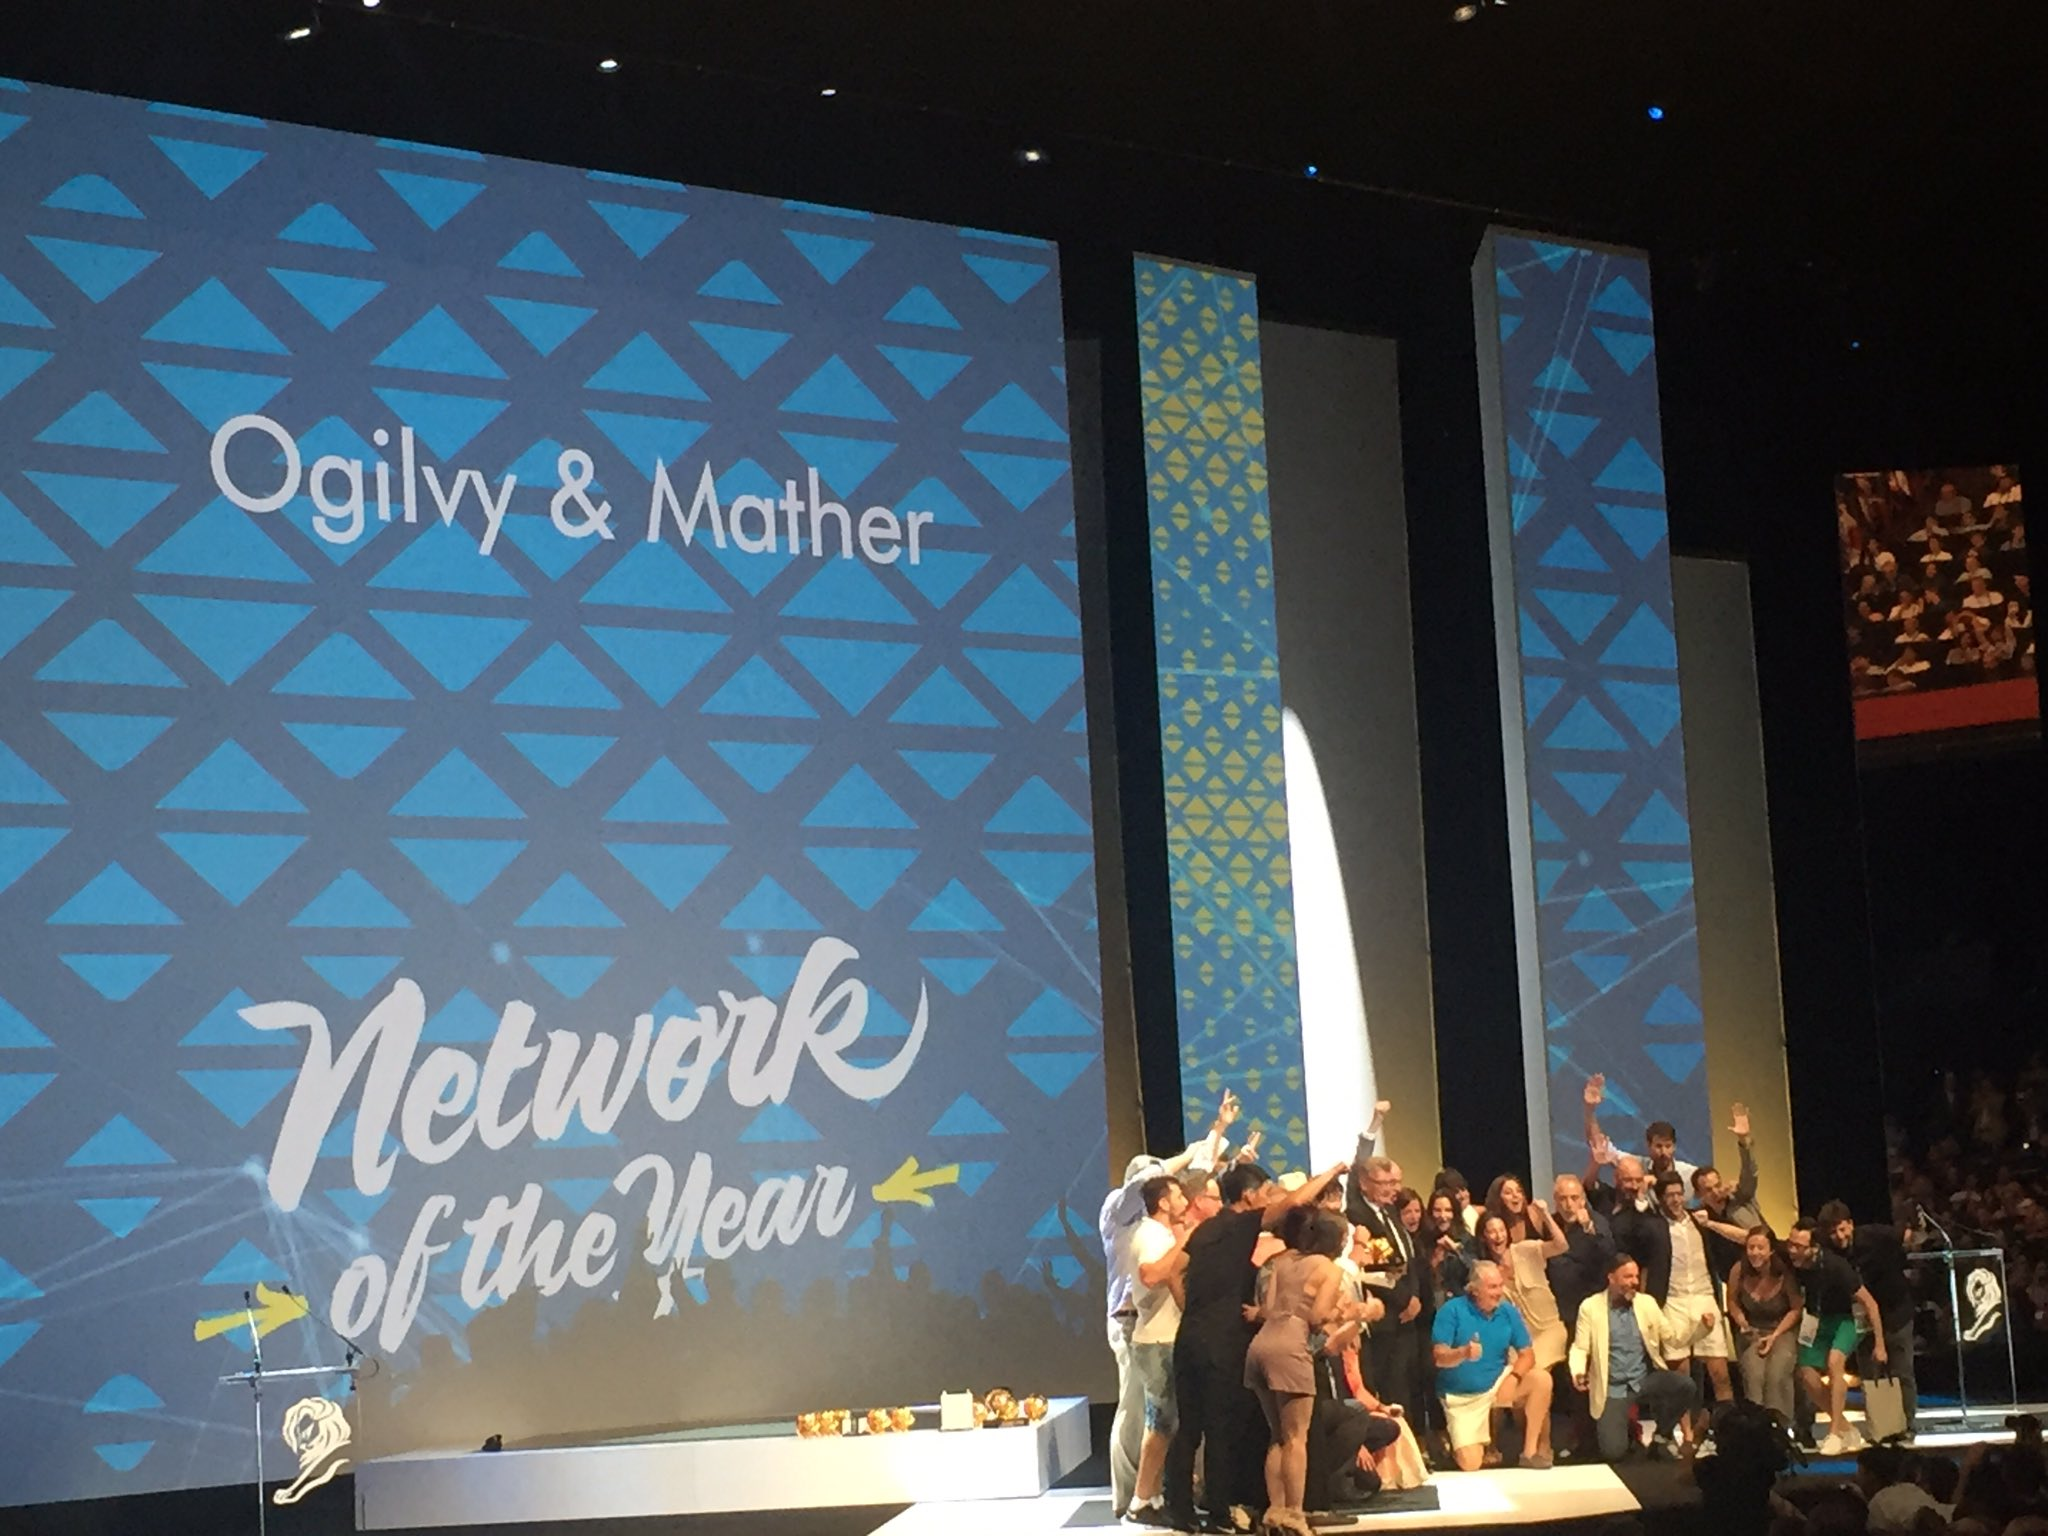 RT @adobomagazine: Congratulations, @Ogilvy, the 2016 #CannesLions Network of the Year! https://t.co/UWneouaSma